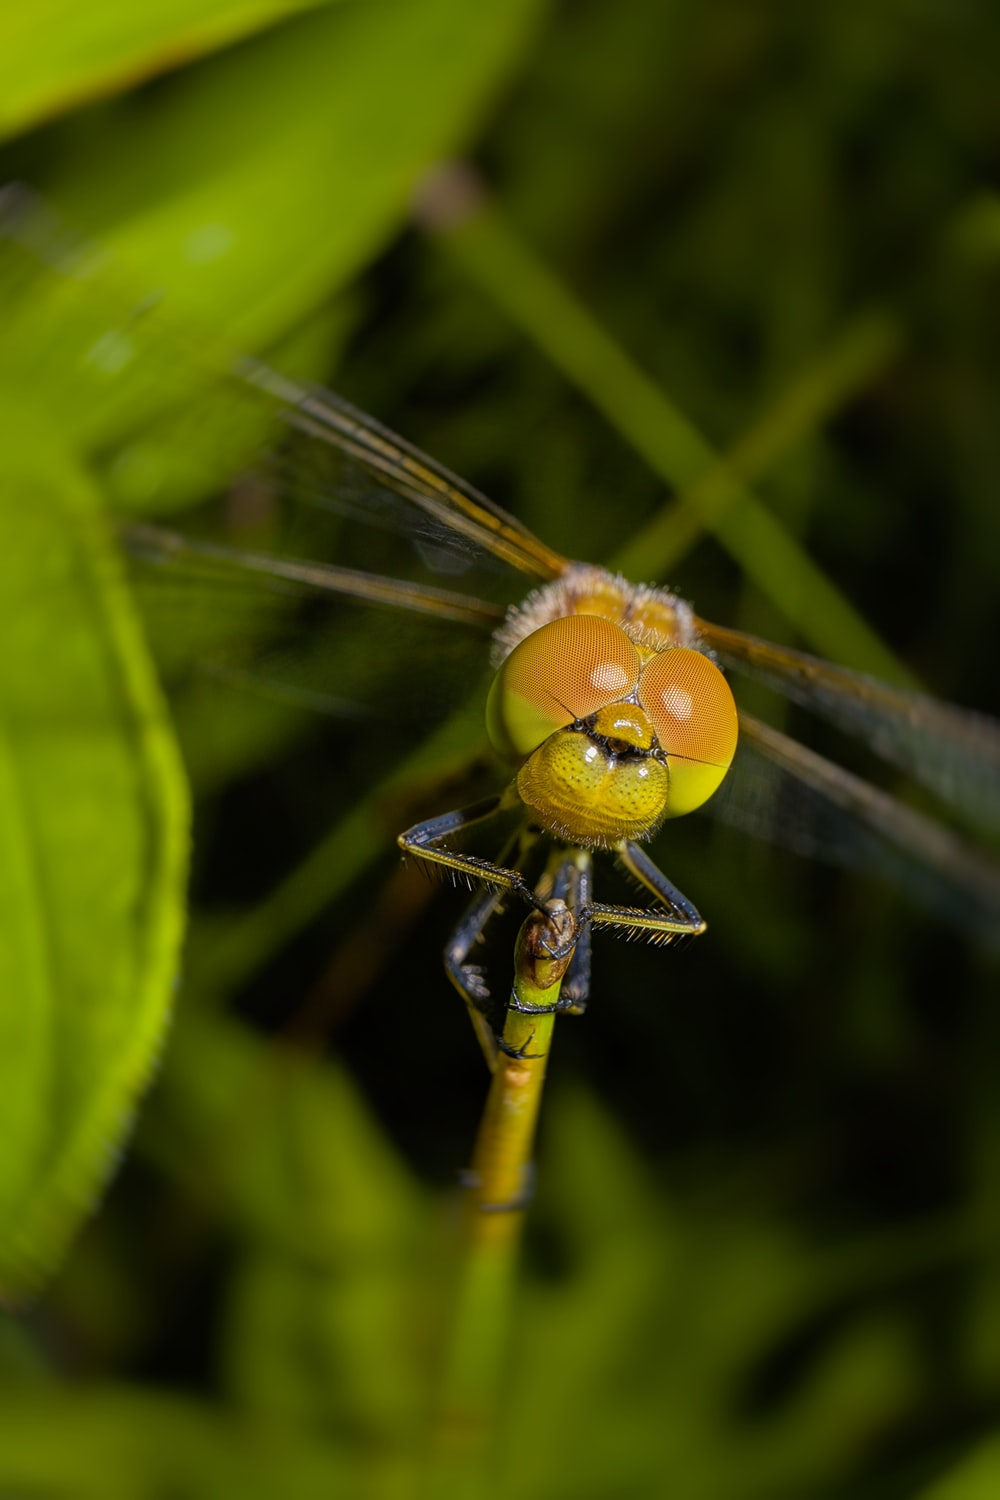 brown and green dragonfly perched on green leaf in close up photography during daytime